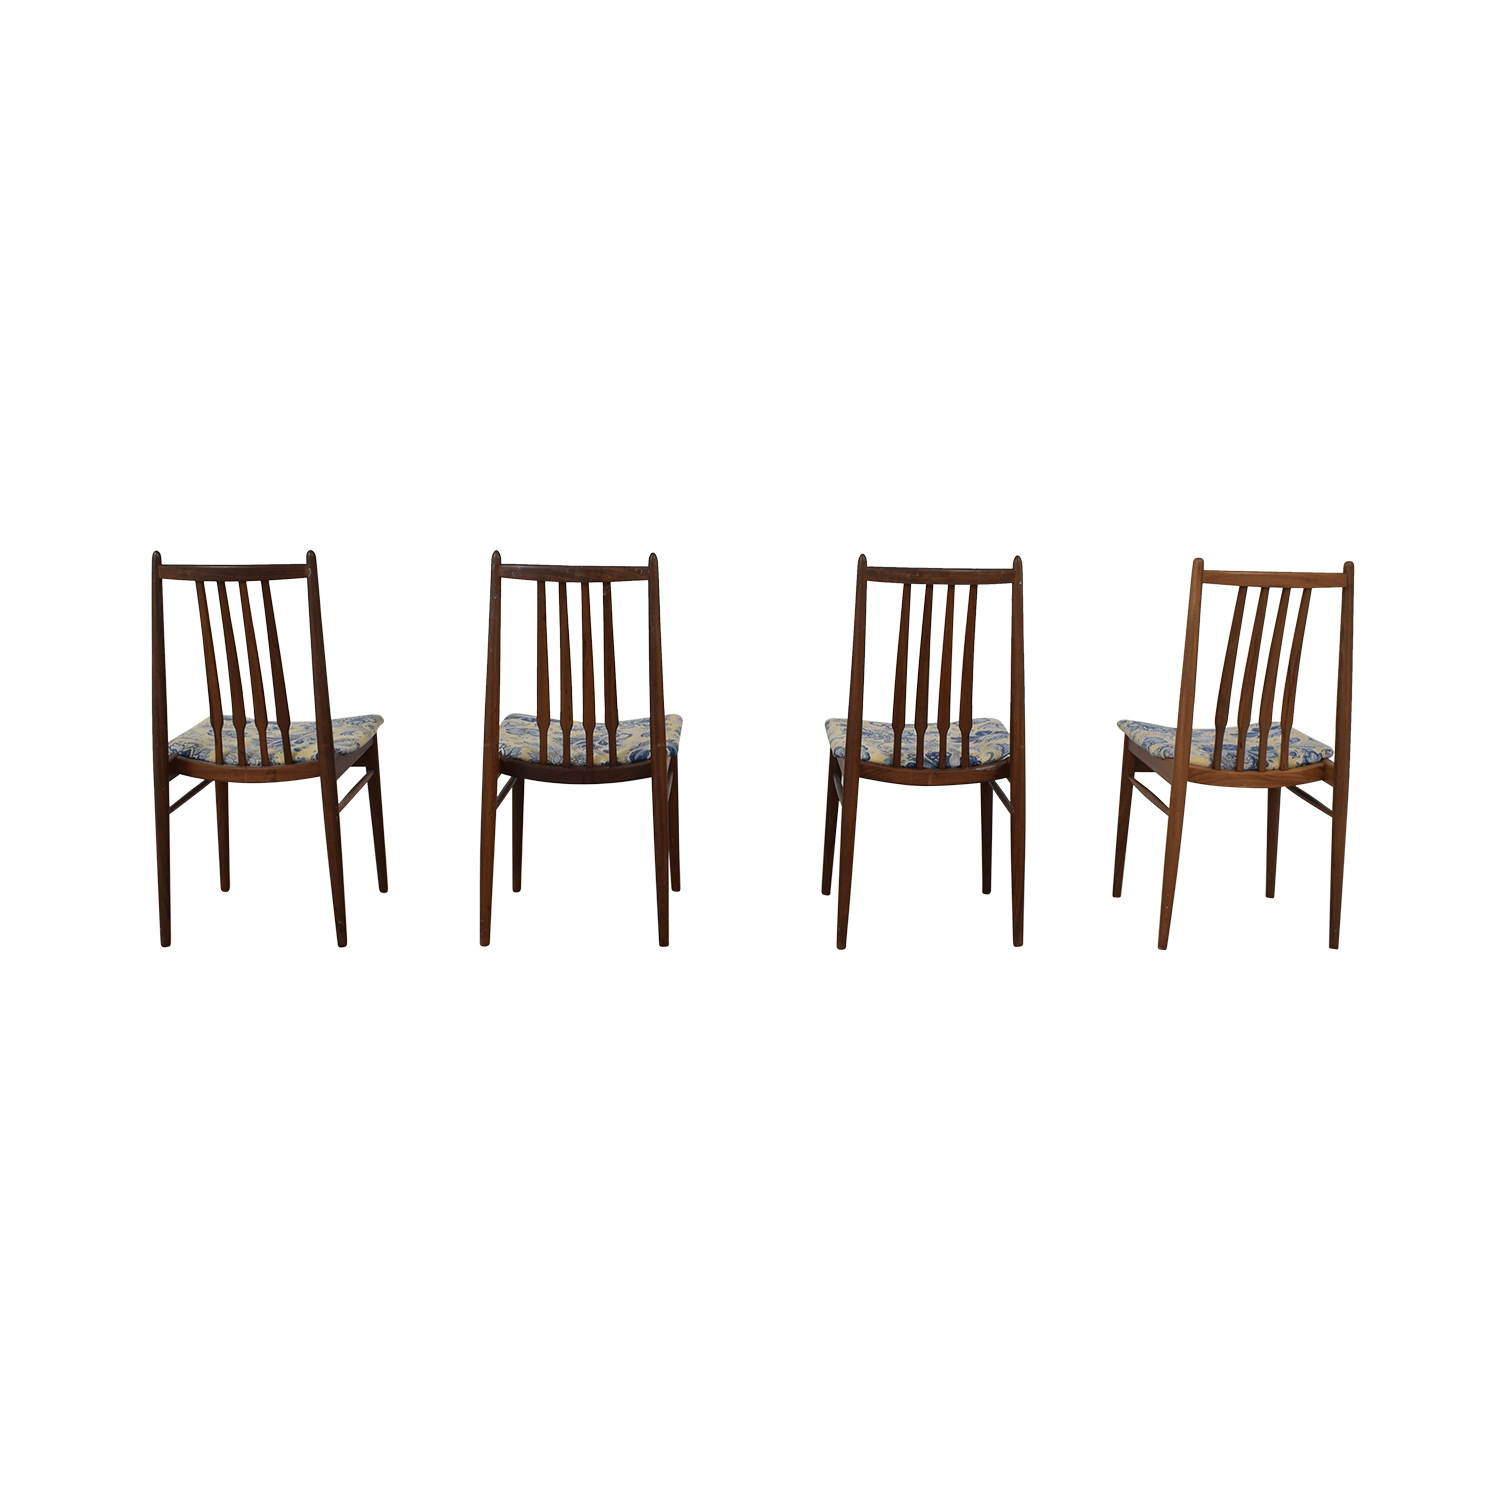 Scandinavian Wooden Chairs price